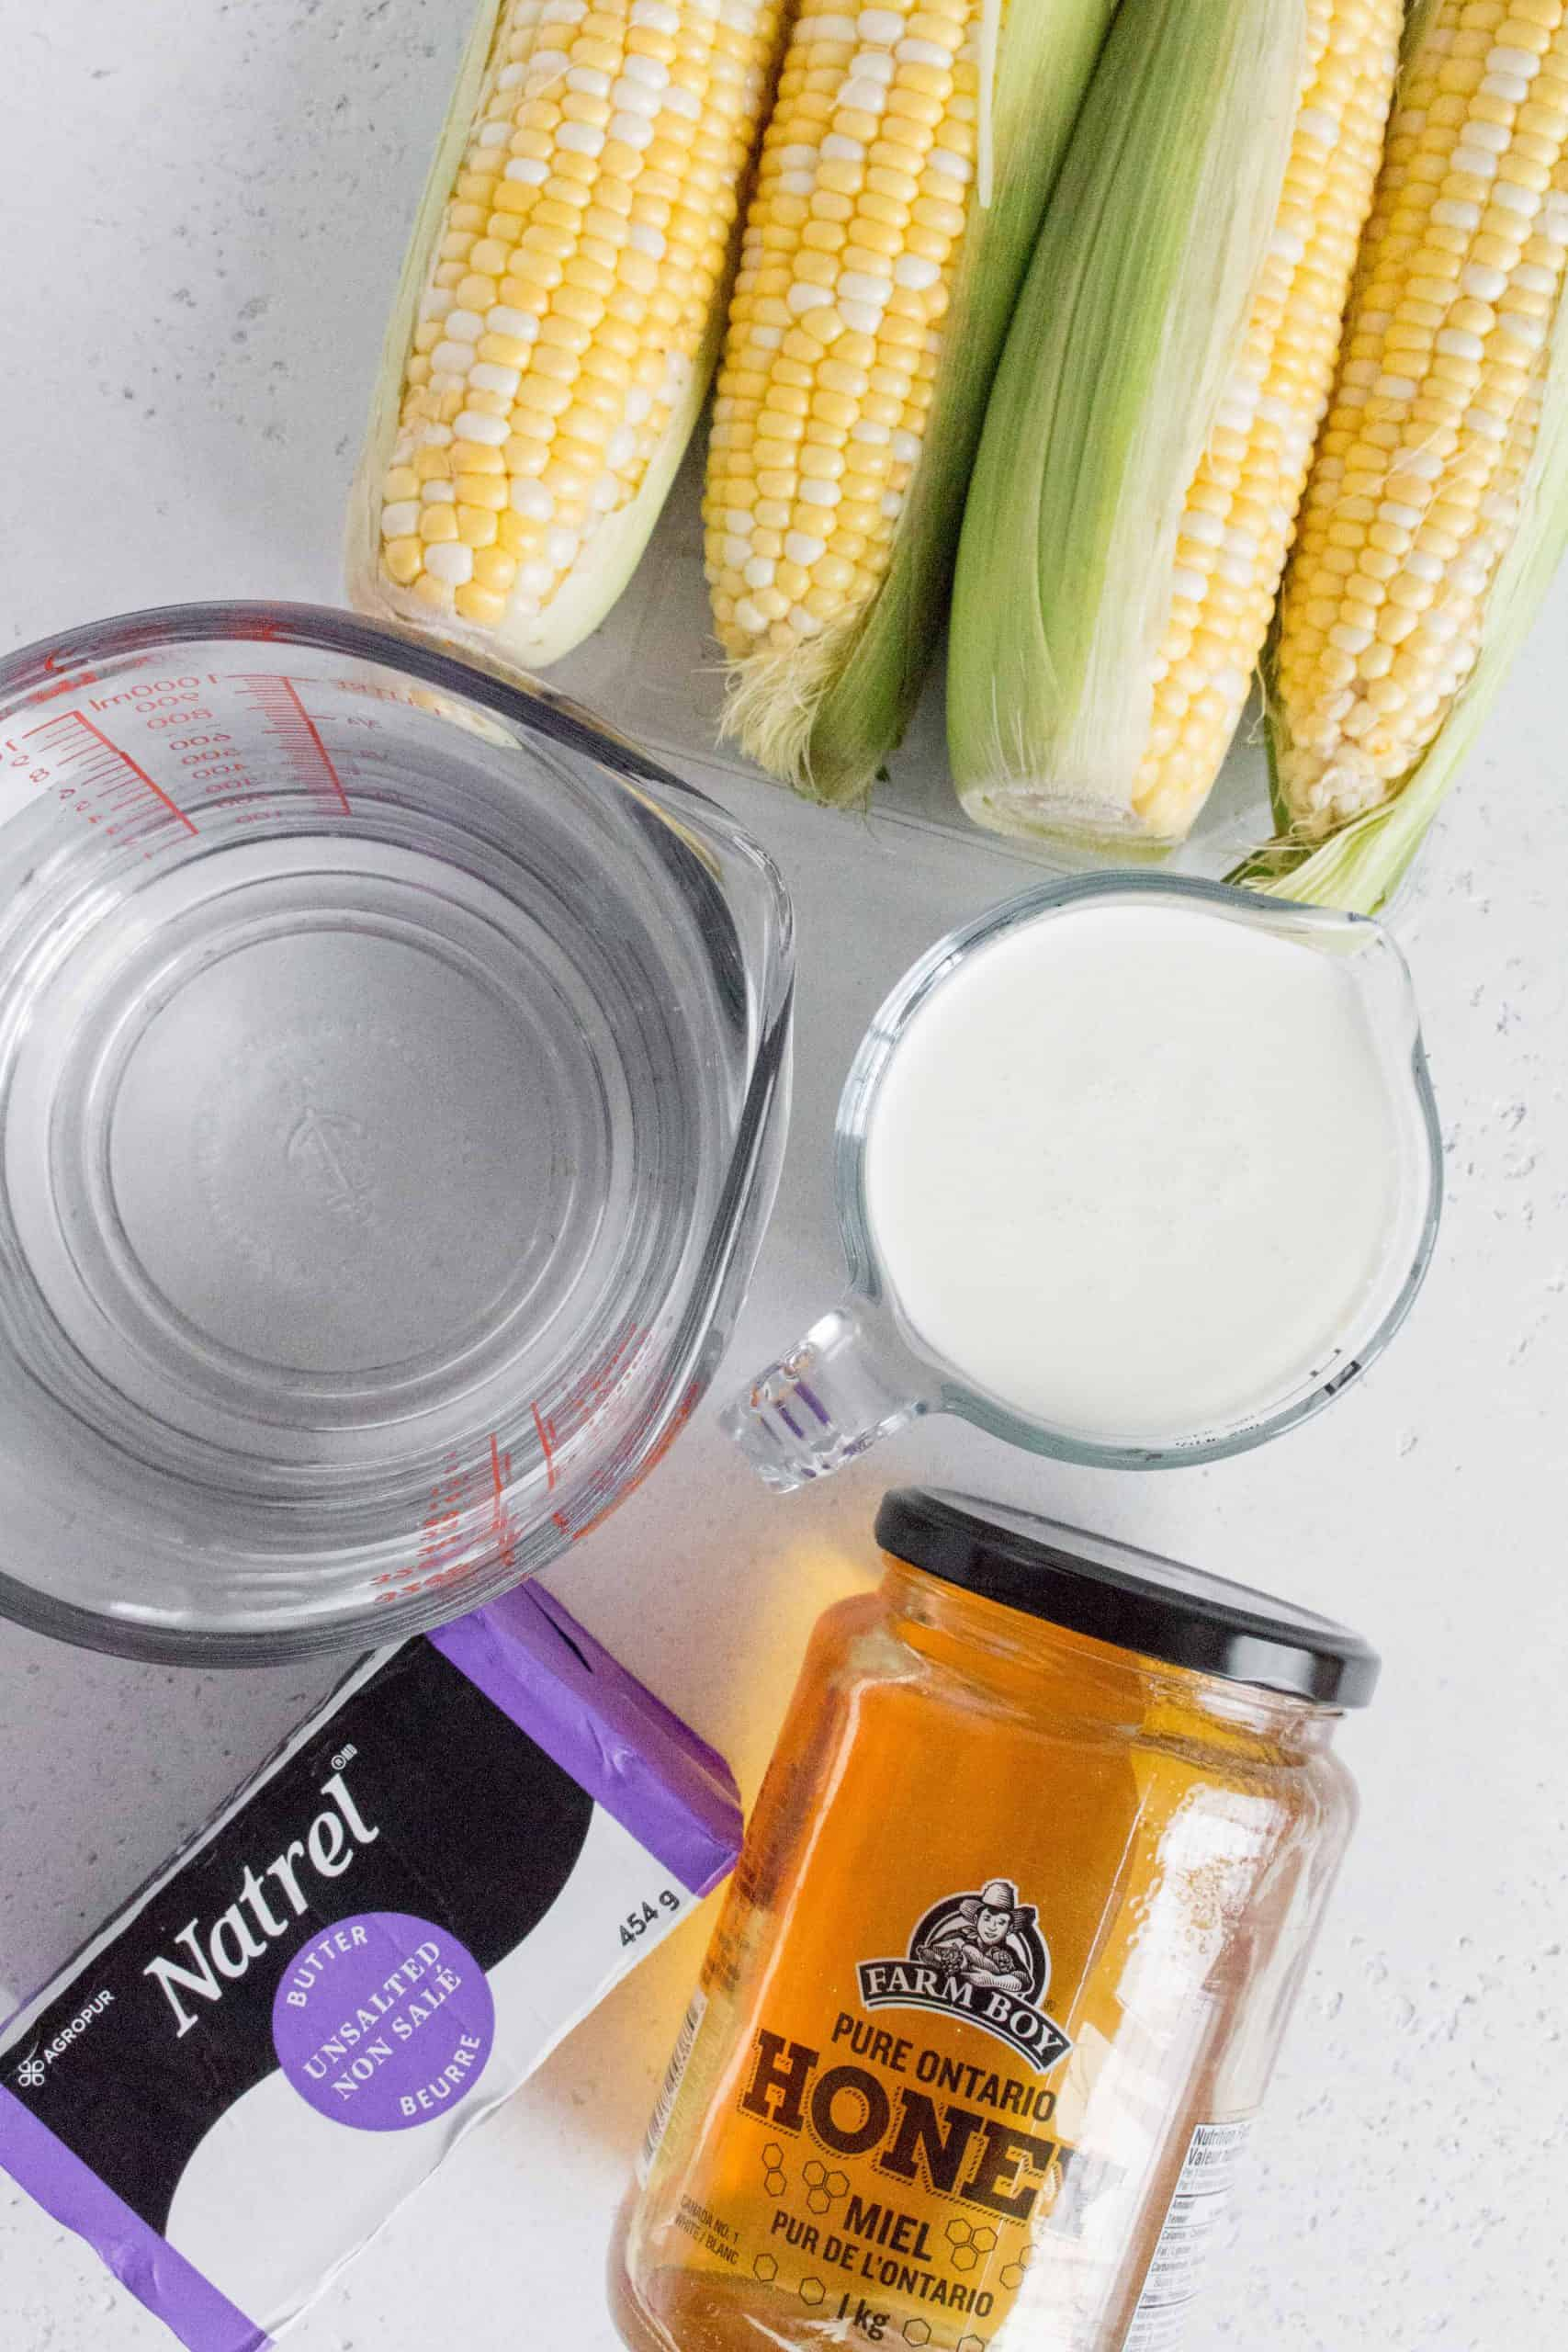 What You'll Need To Make This Sweet Corn on the Cob